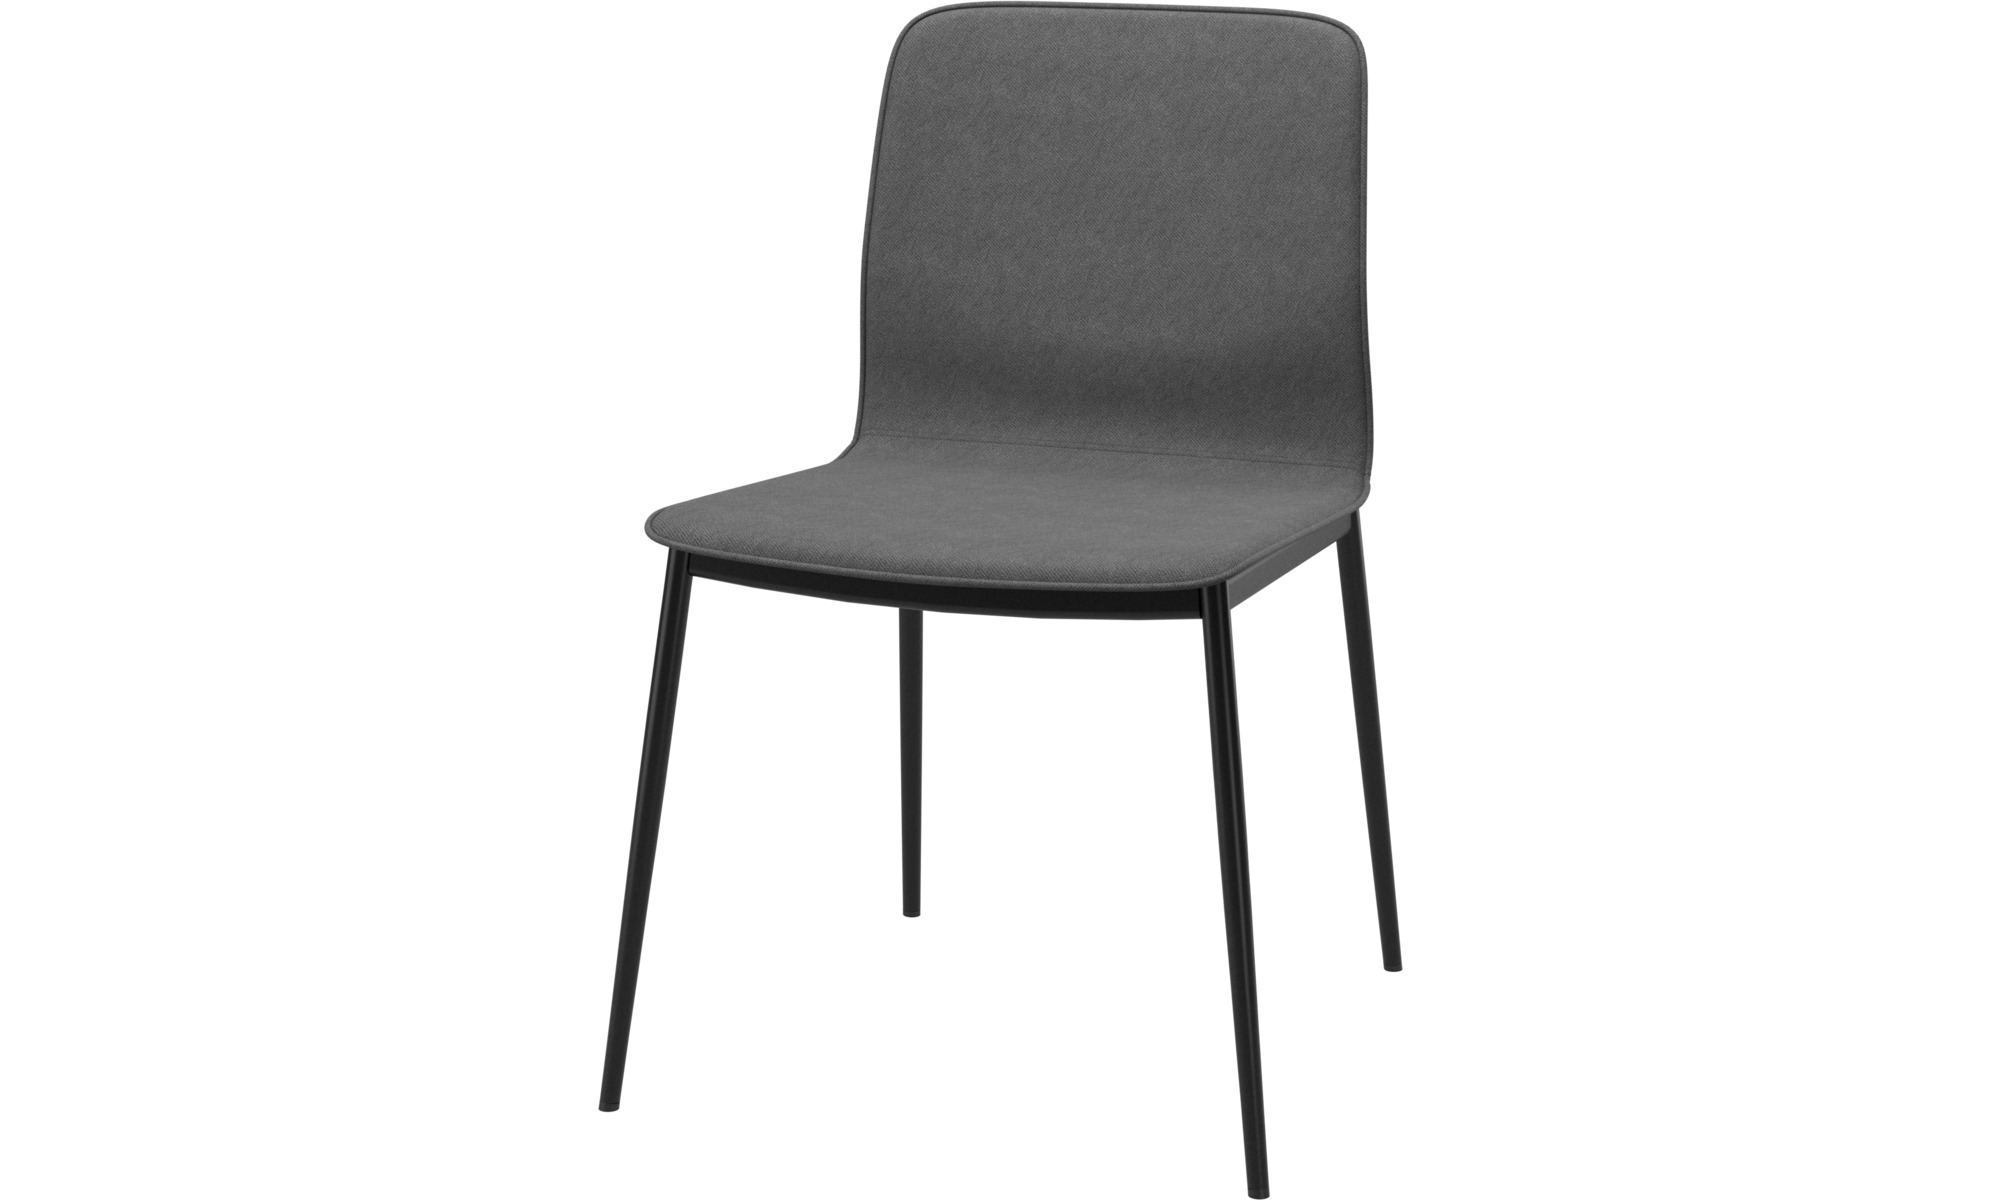 Dining chairs - Newport dining chair - Grey - Fabric